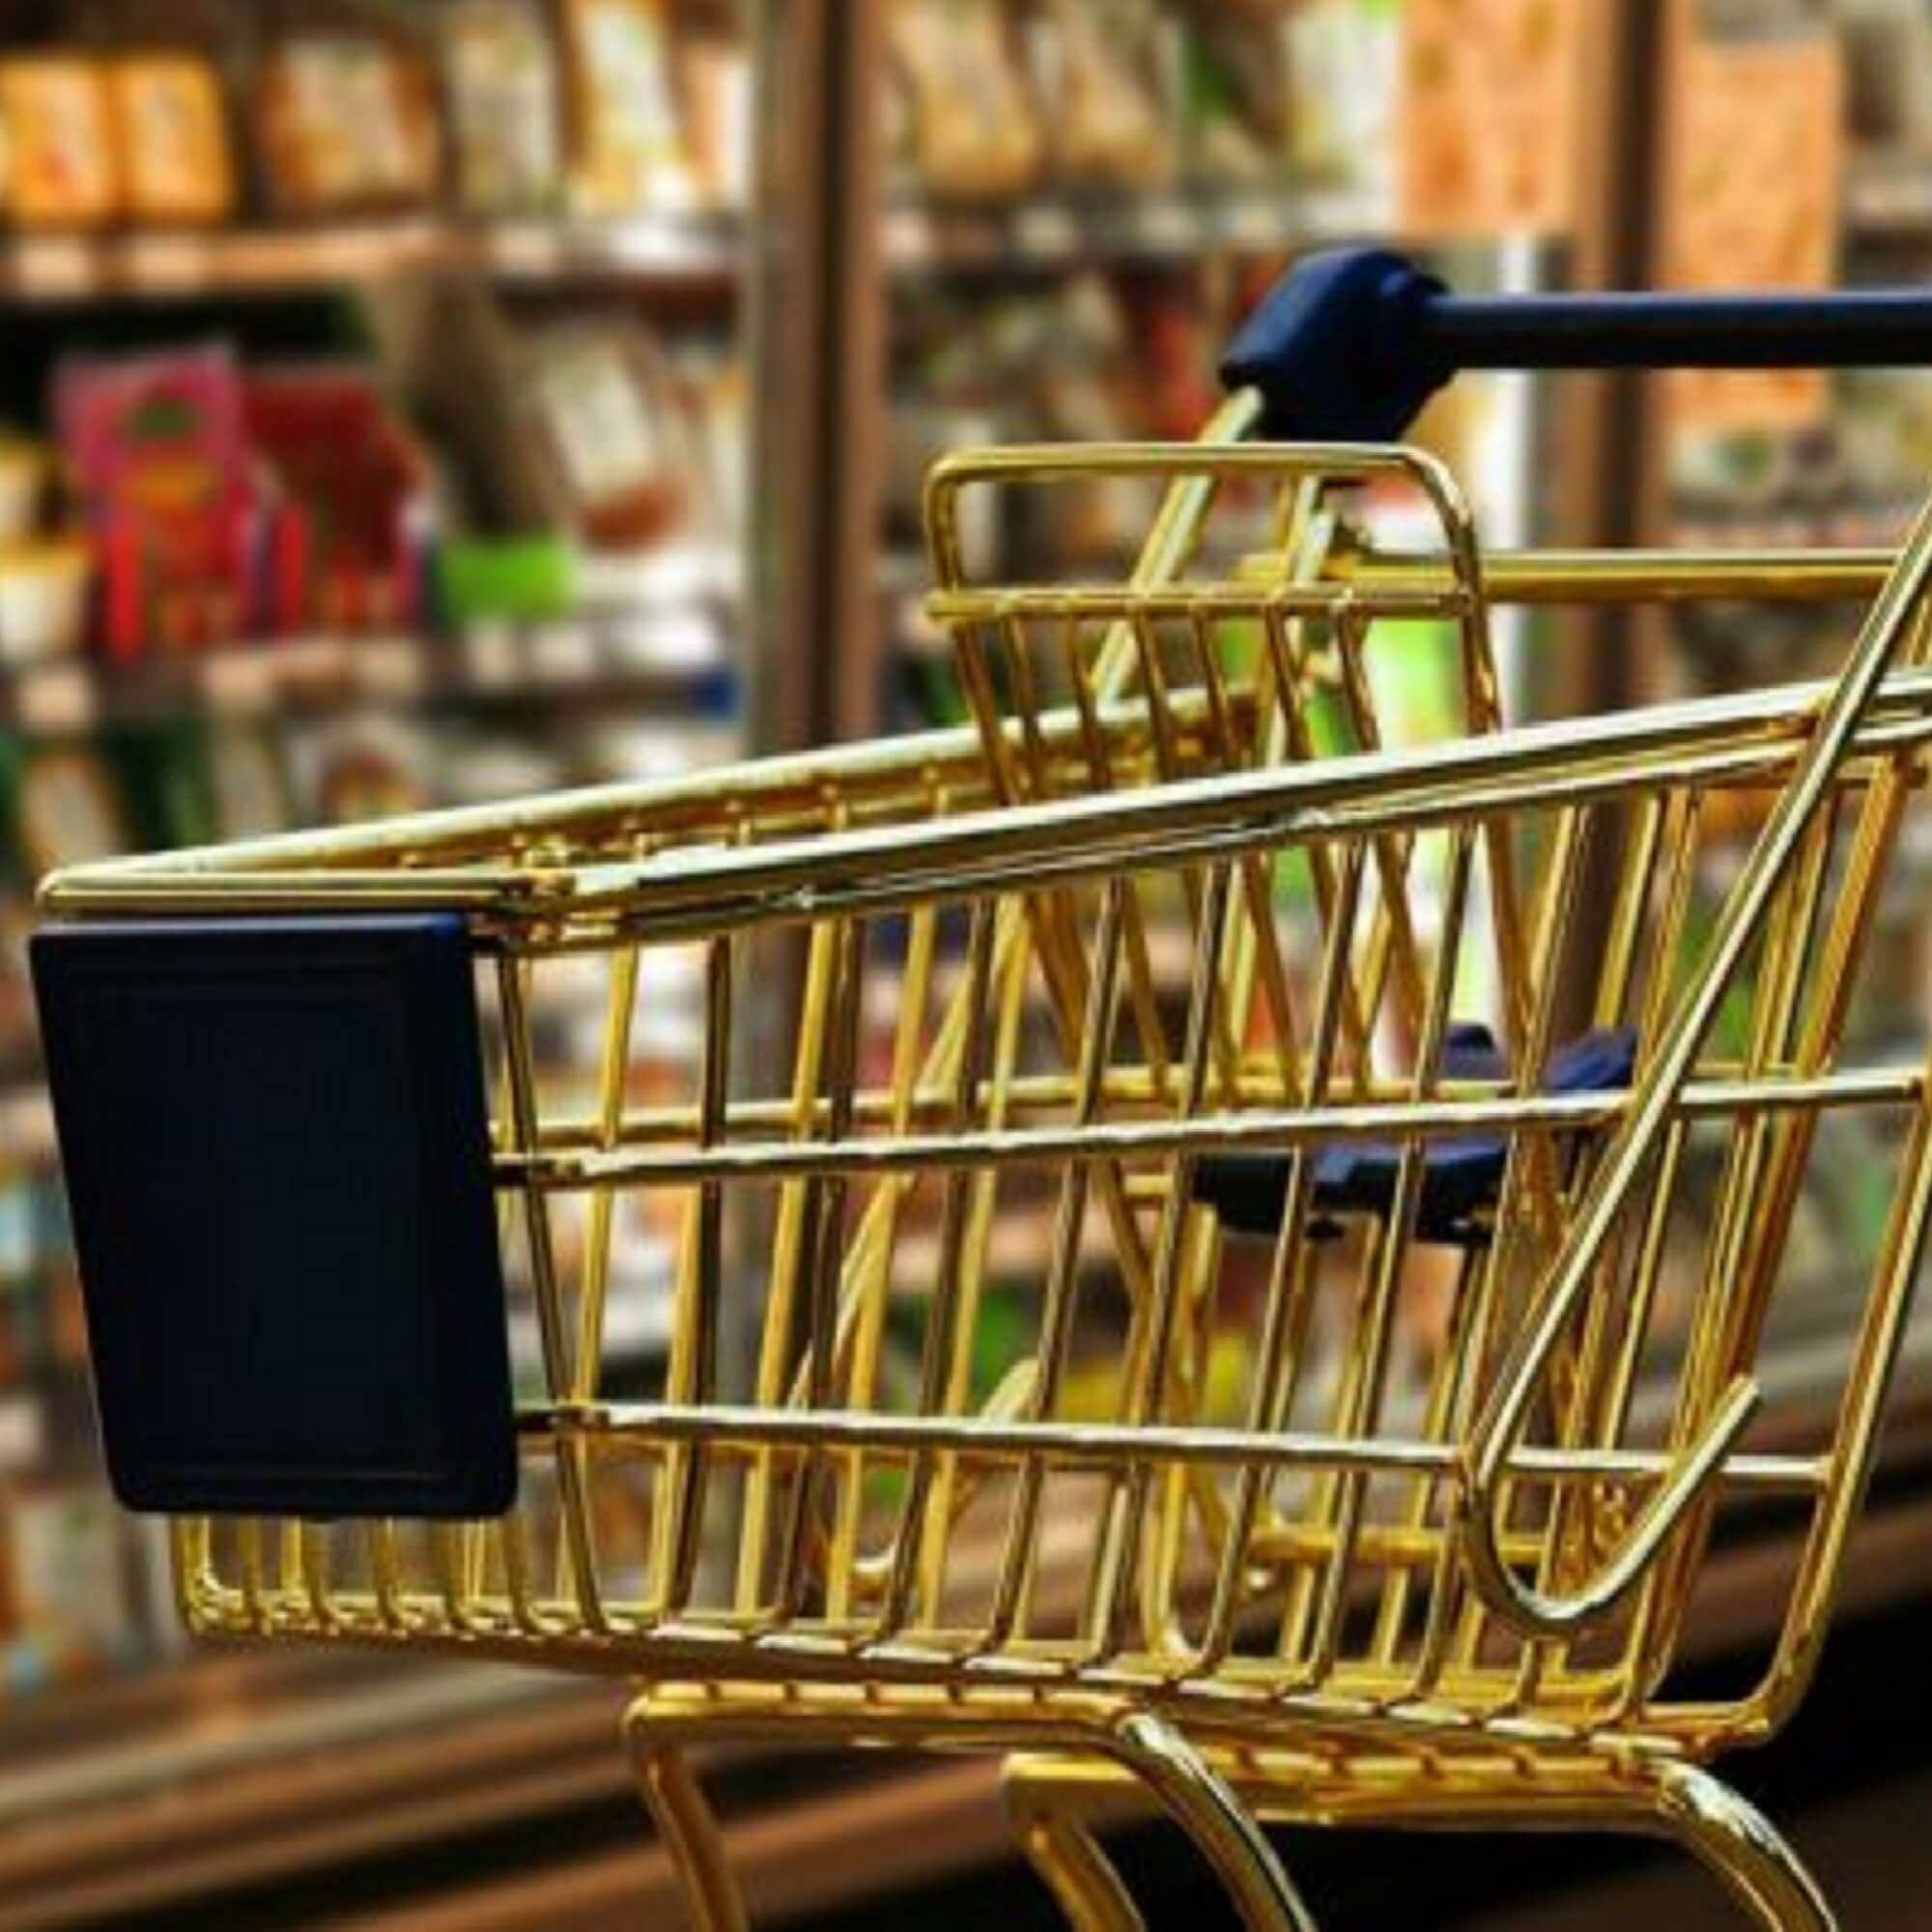 Shopping trolley in supermarket aisle